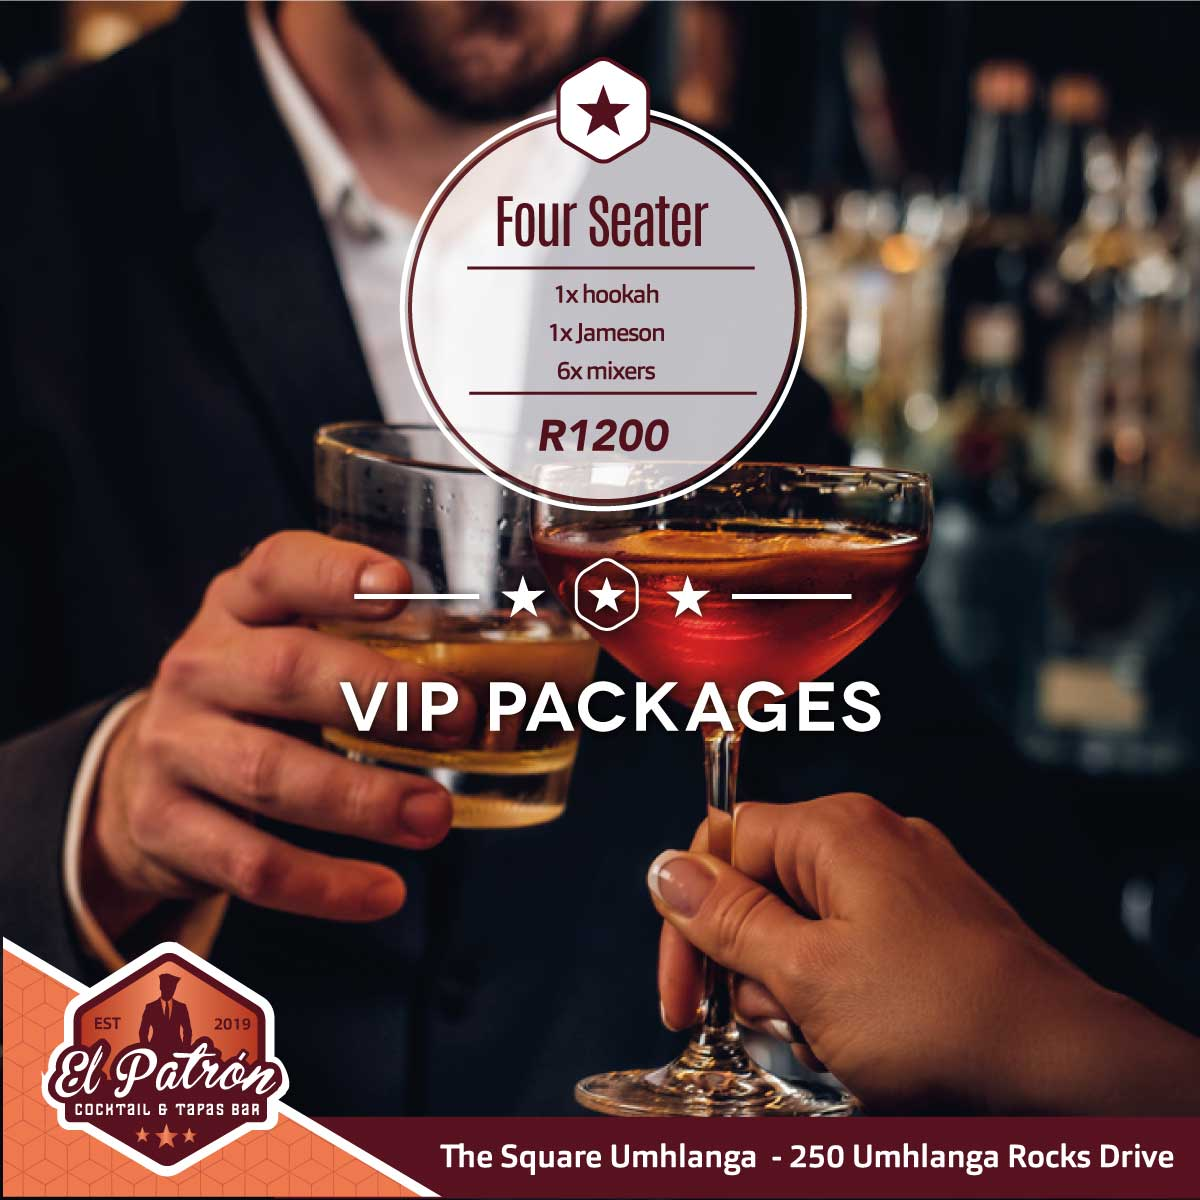 VIP PACKAGE 4 SEATER JAMESON SPECIAL